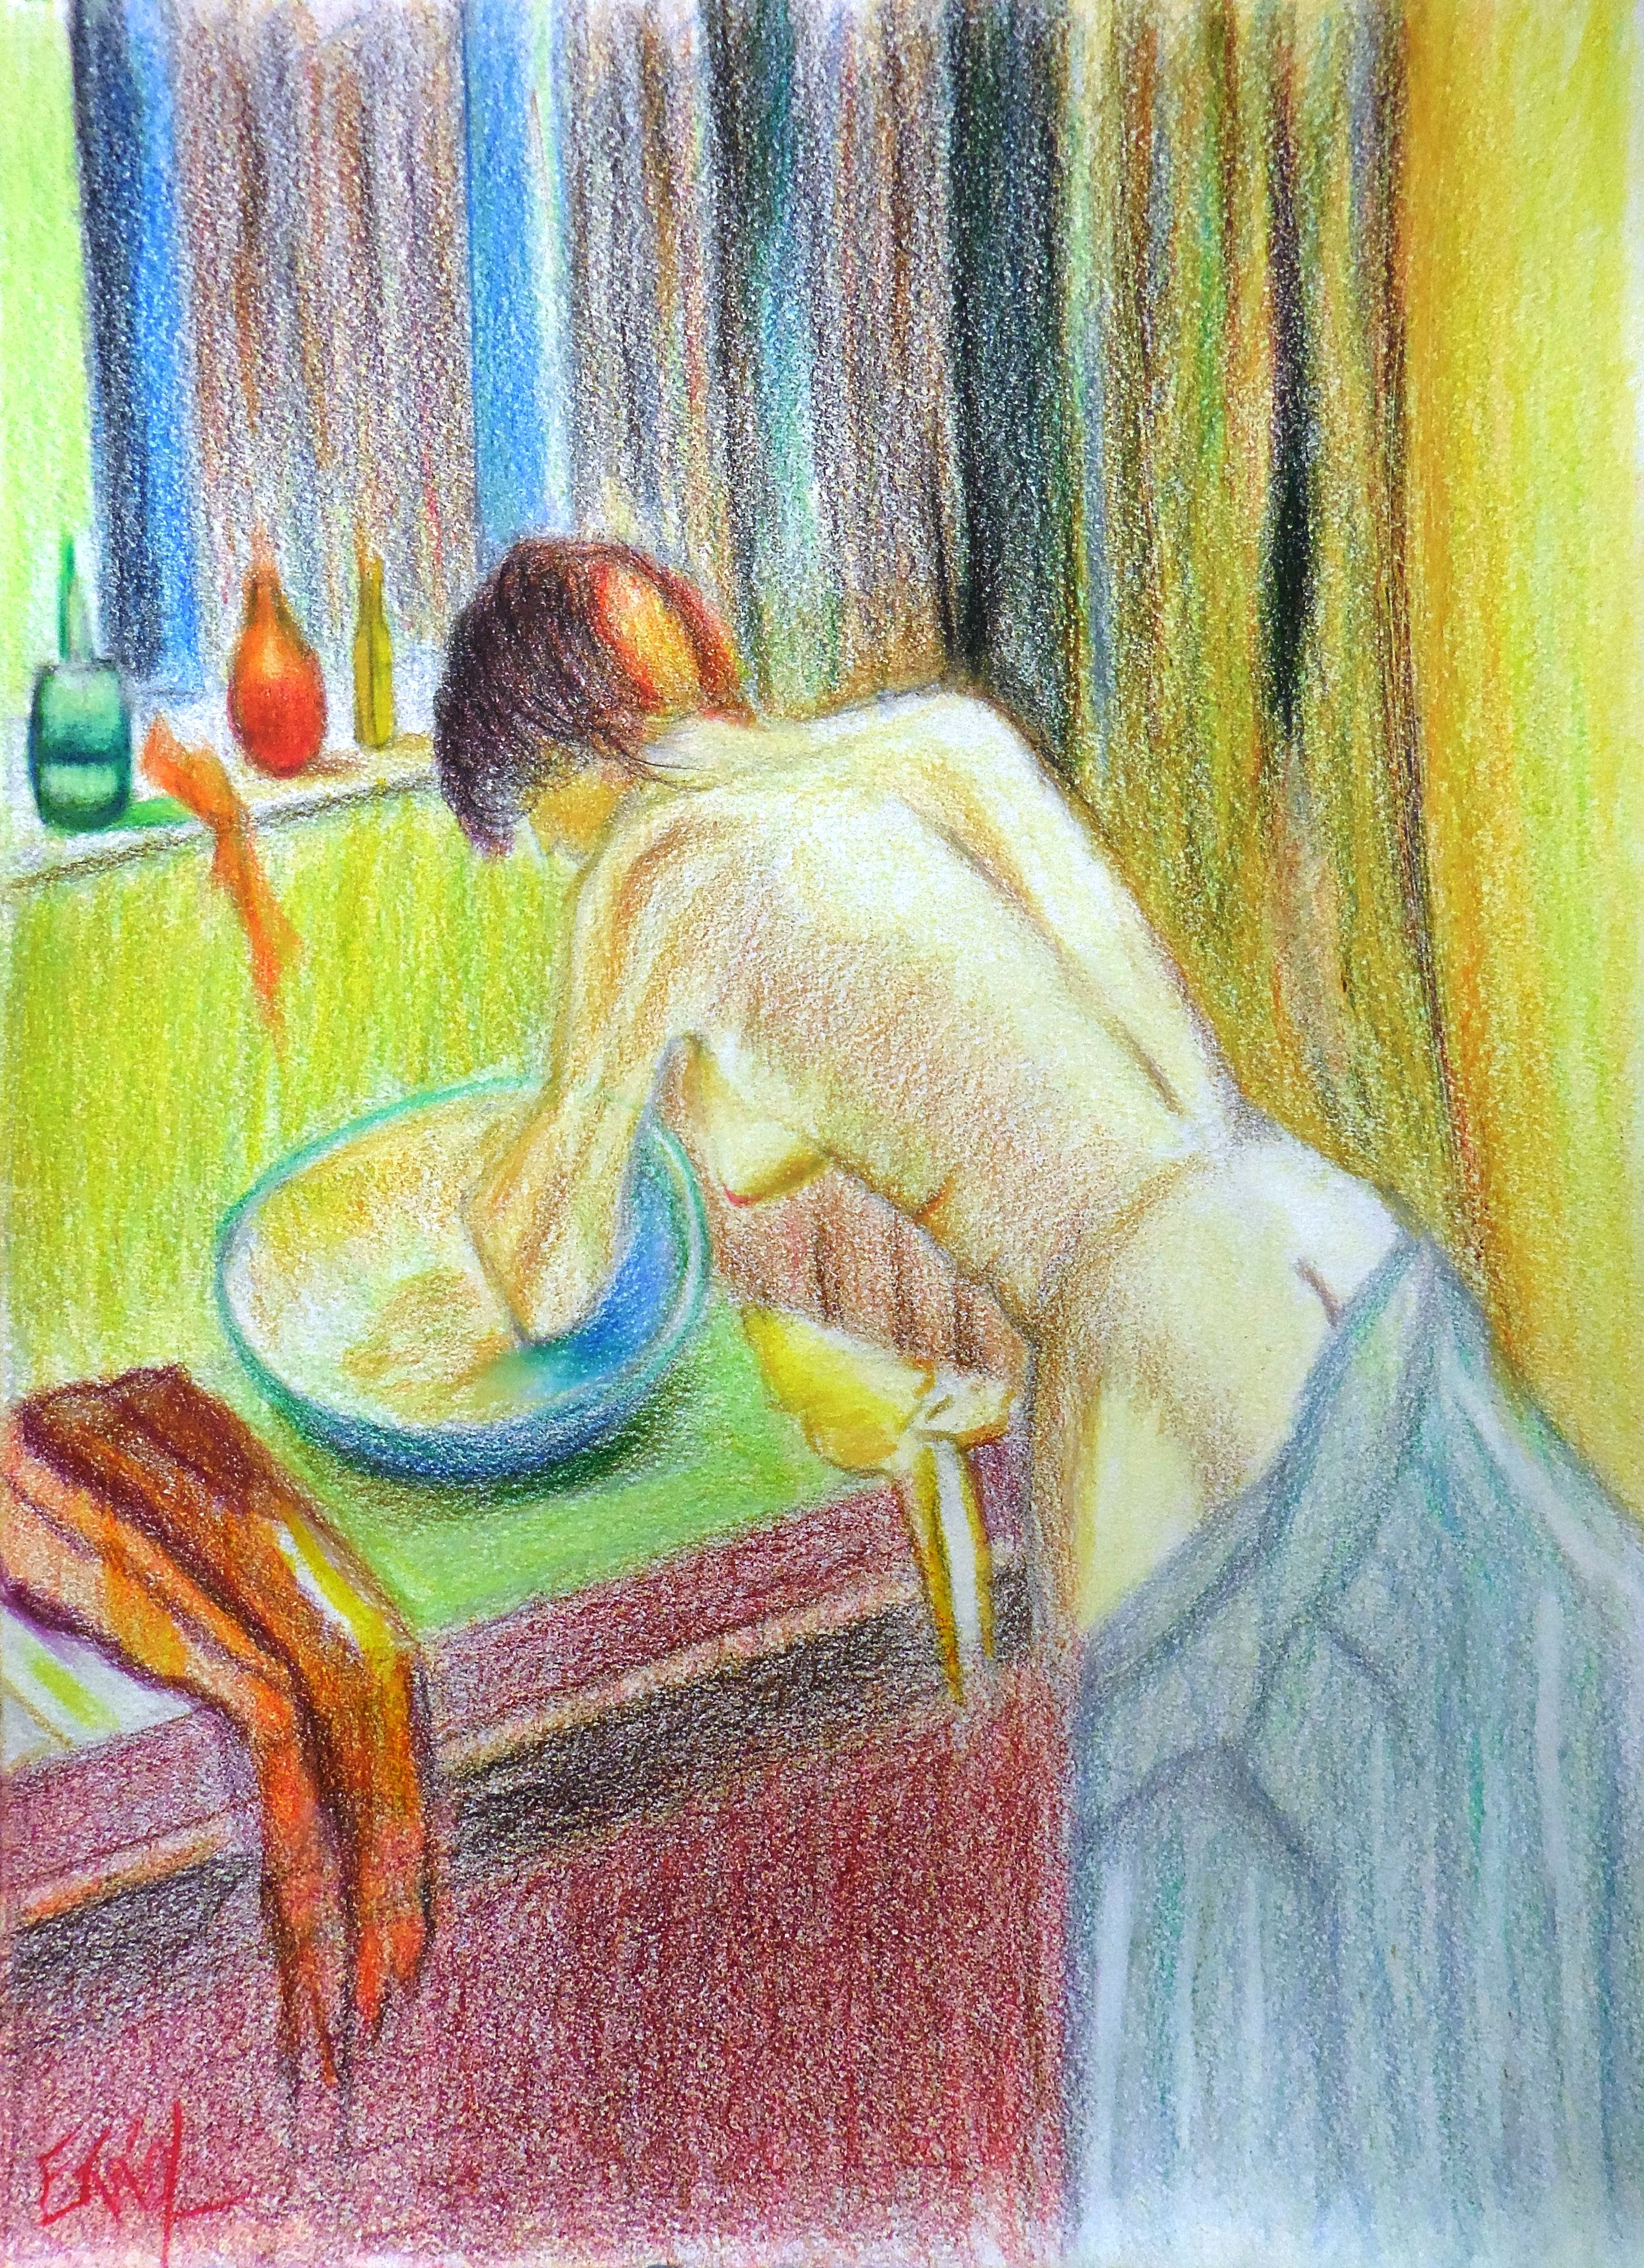 Woman Washing her Face. Faber Castell Polychromos Coloured Pencils on Heavy Duty Drawing Paper. 9 x 12